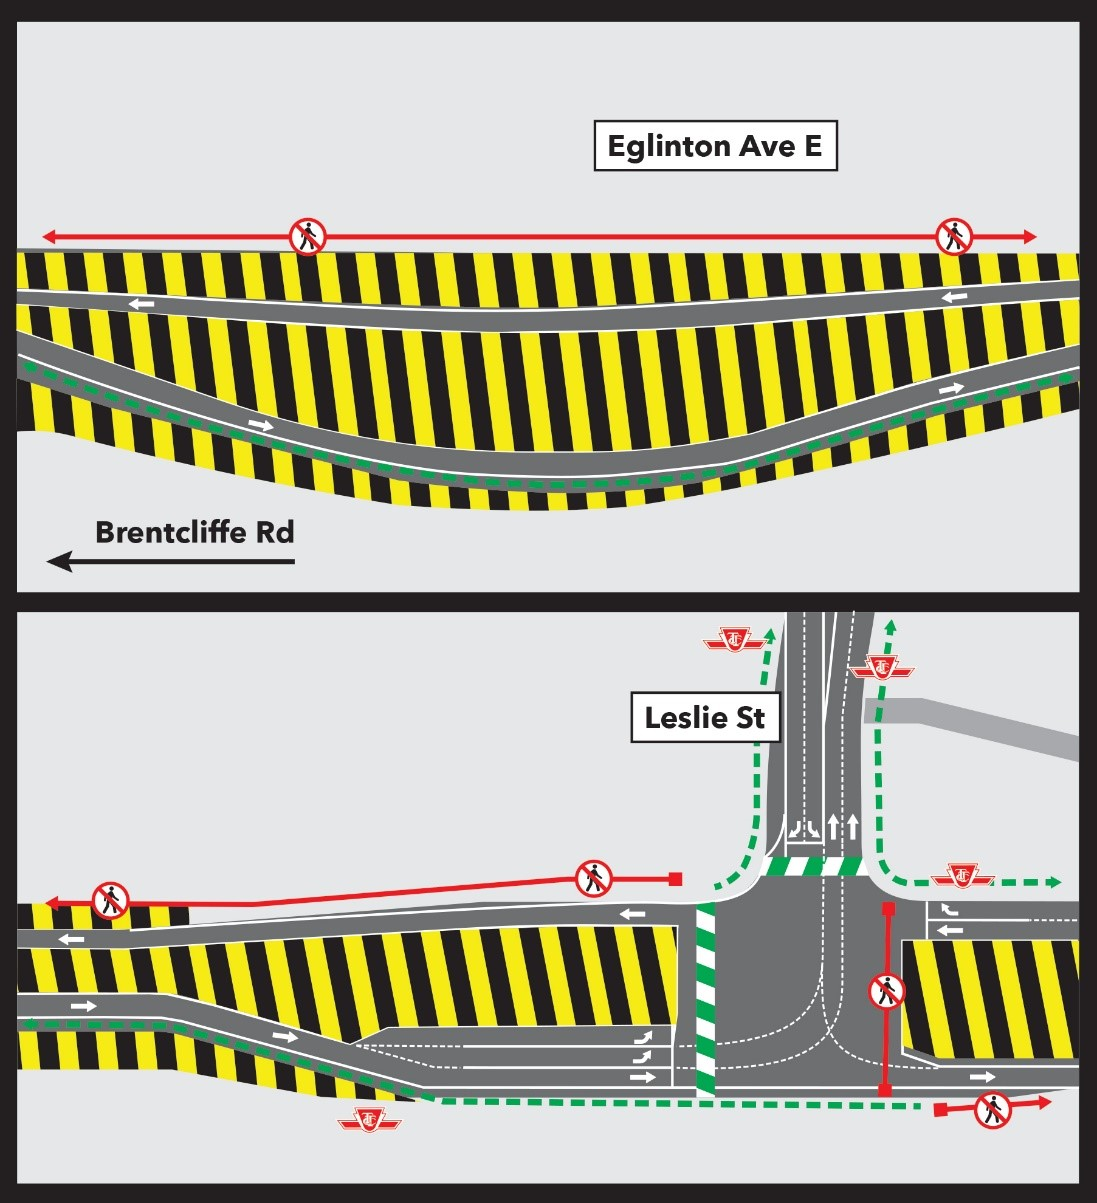 Lane Realignment on Eglinton Ave E, west of Leslie Street for Road Works